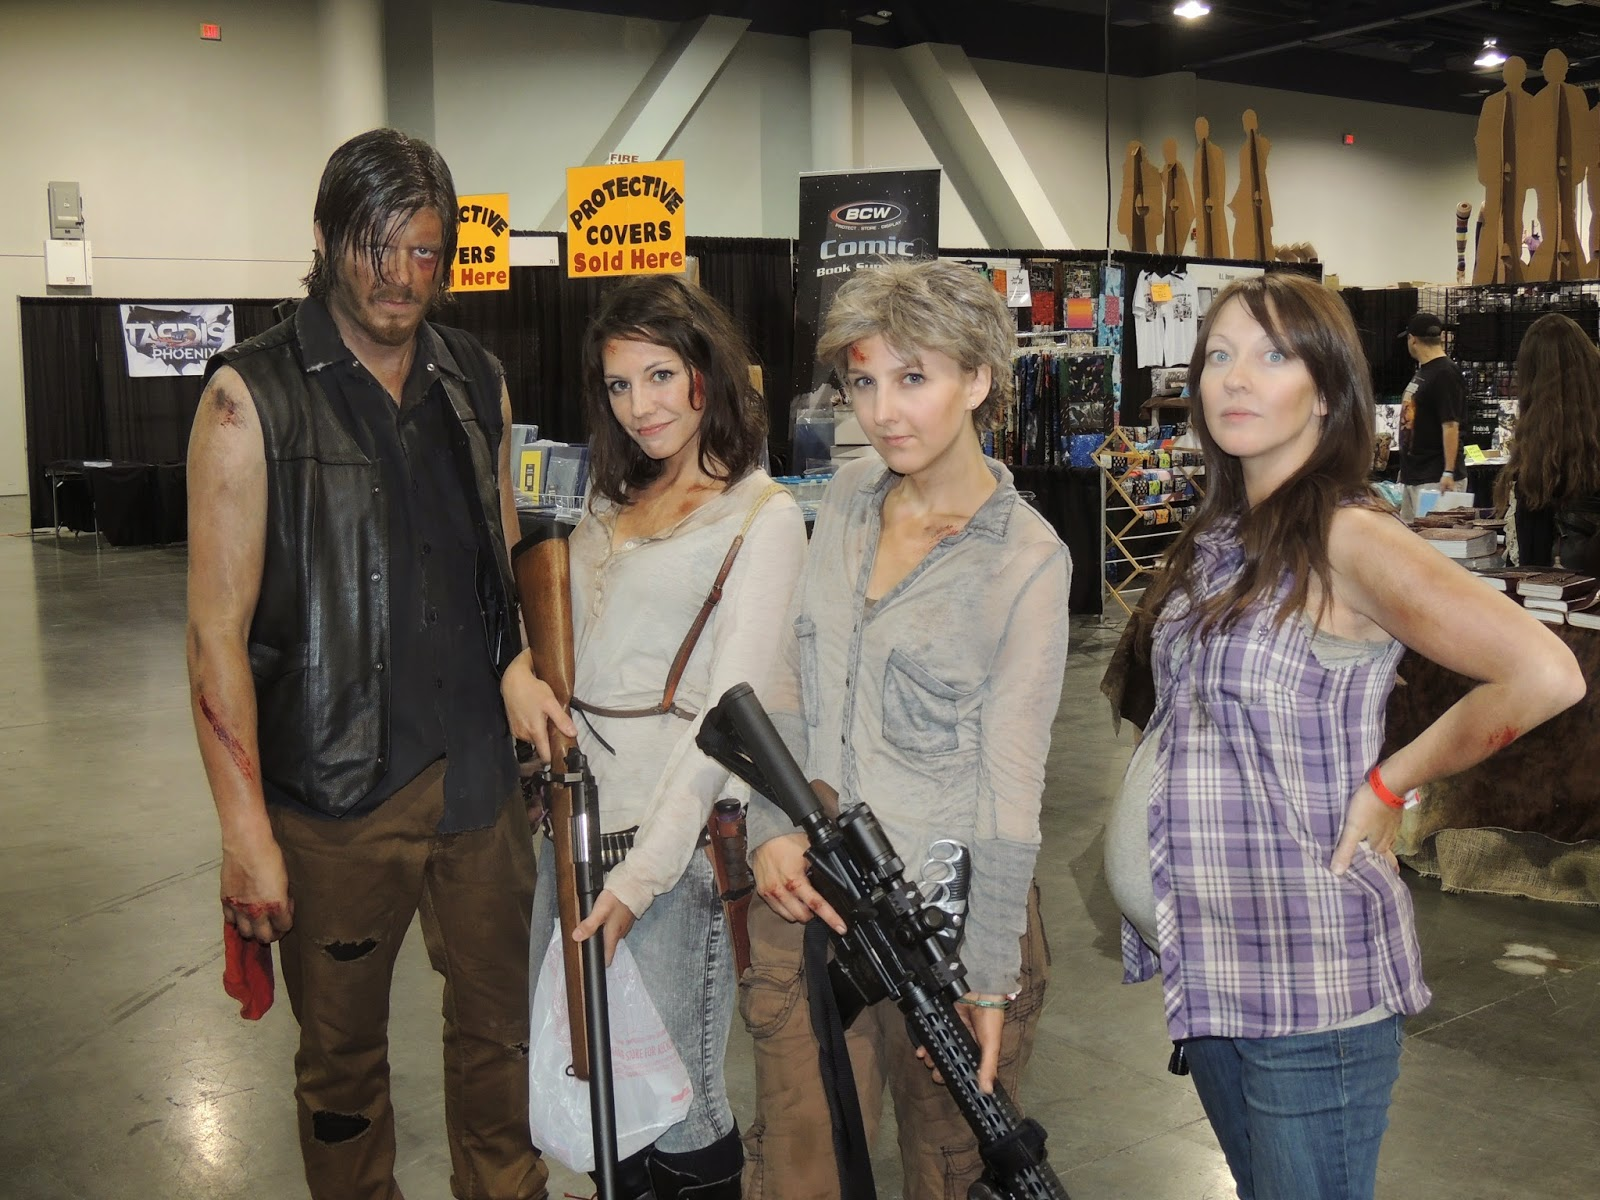 twd-group-las-vegas-convention-center